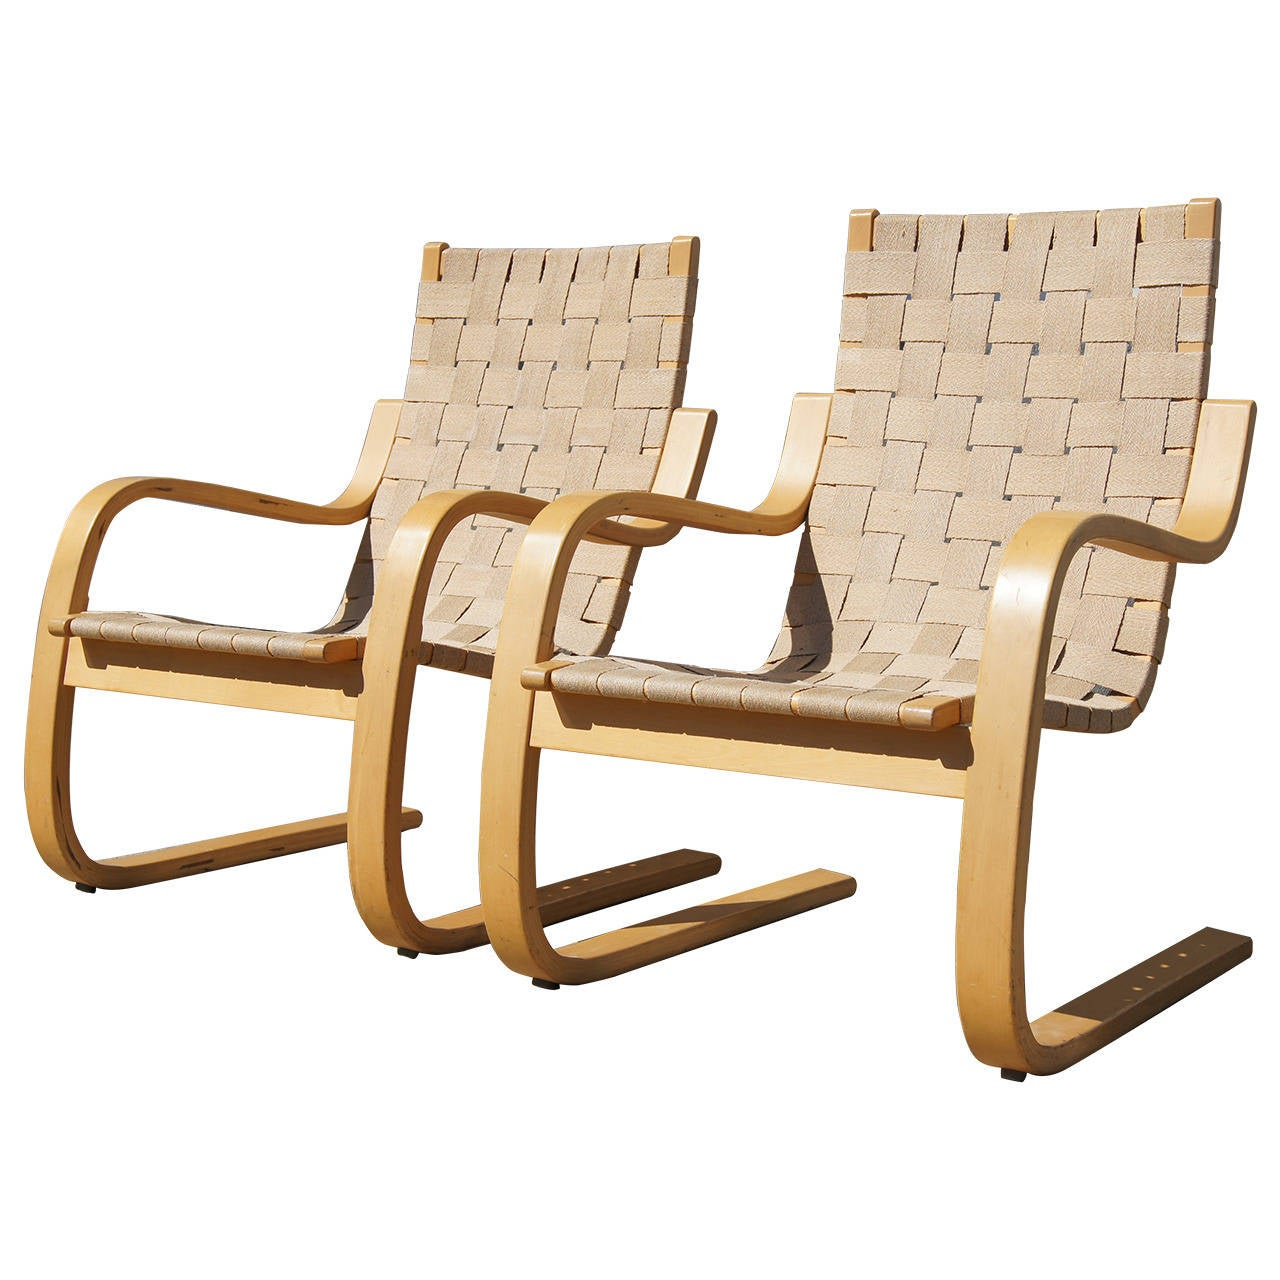 Pair of lounge chairs 406 by alvar aalto for artek at 1stdibs for Alvar aalto chaise